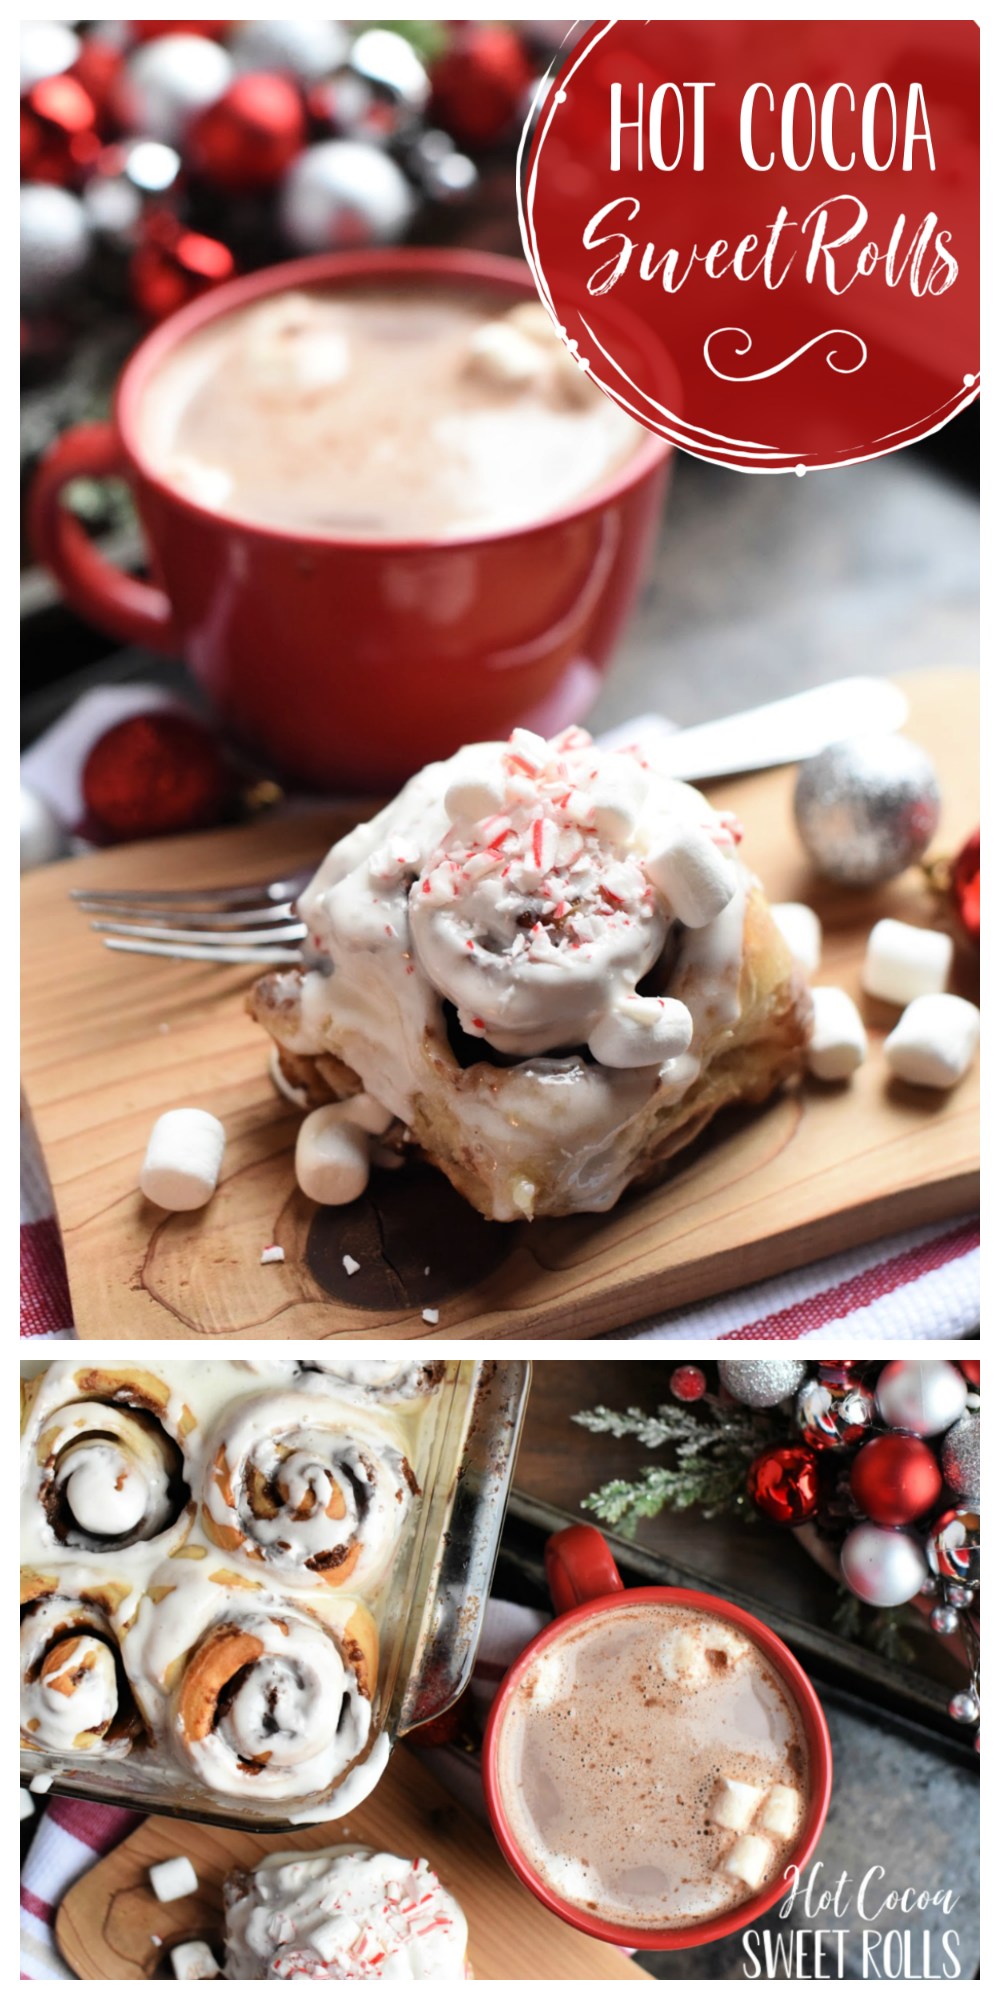 Hot Chocolate Sweet Rolls-These rolls are filled with a warm chocolate and topped with marshmallow icing. Sprinkle crushed peppermint on top for a perfect Christmas breakfast or treat. Made with Rhodes Bake N Serv rolls meaning they are super easy and taste amazing! #christmas #christmasbreakfast #breakfast #dessert #dessertrecipes